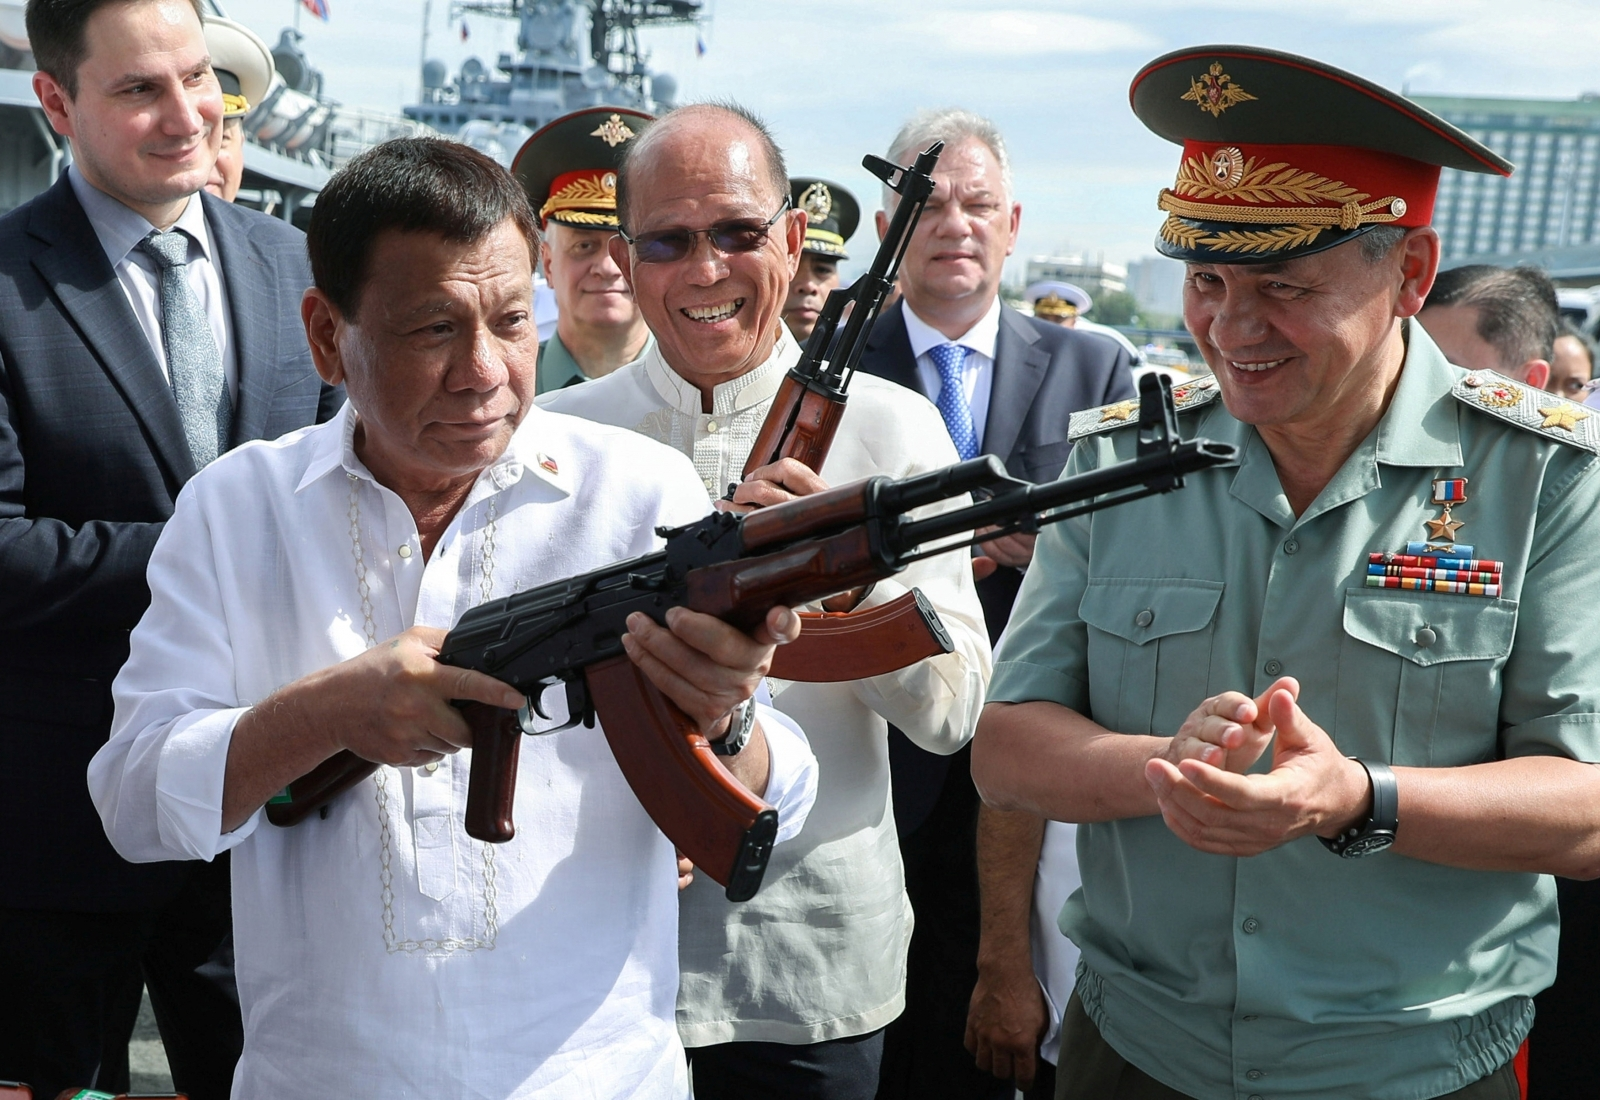 Philippine President Rodrigo Duterte (l) holds a AK-47 assault rifle as Russian Minister of Defence Sergei Shoigu looks